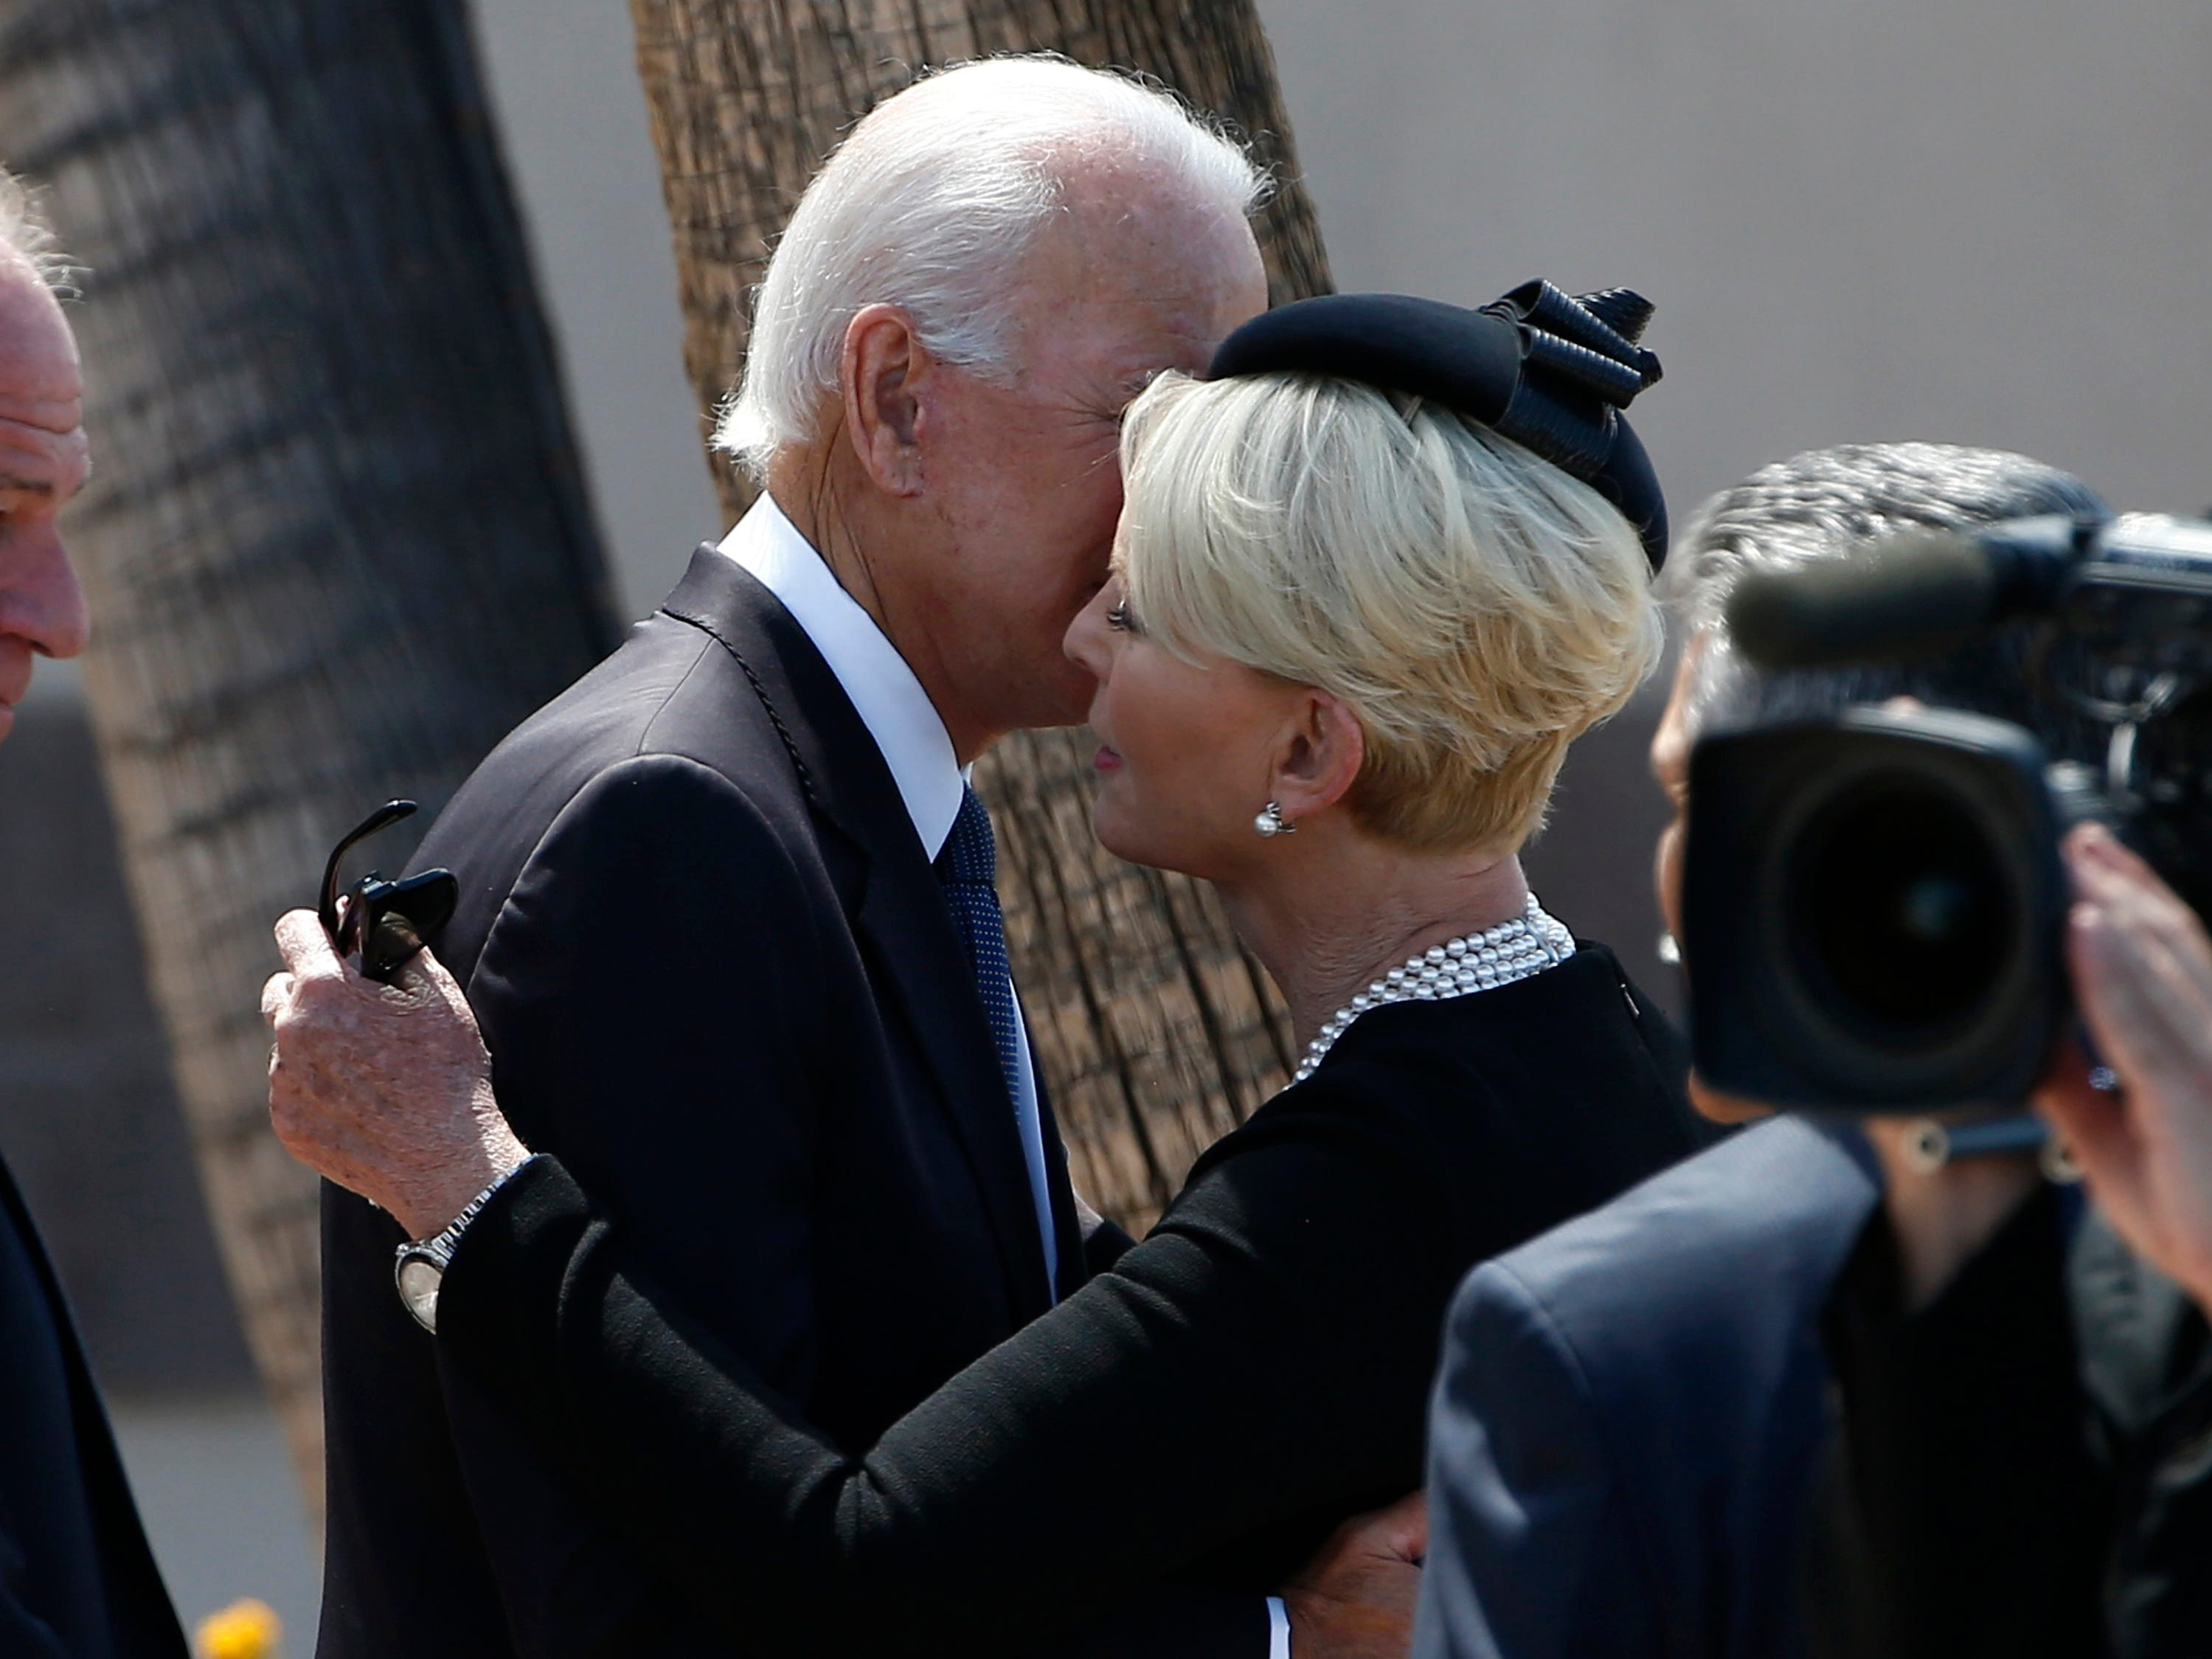 Cindy McCain, right, wife of Sen. John McCain, R-Ariz., gets a hug from former Vice President Joe Biden, left, after a memorial service for McCain at North Phoenix Baptist Church, Aug. 30, 2018, in Phoenix.